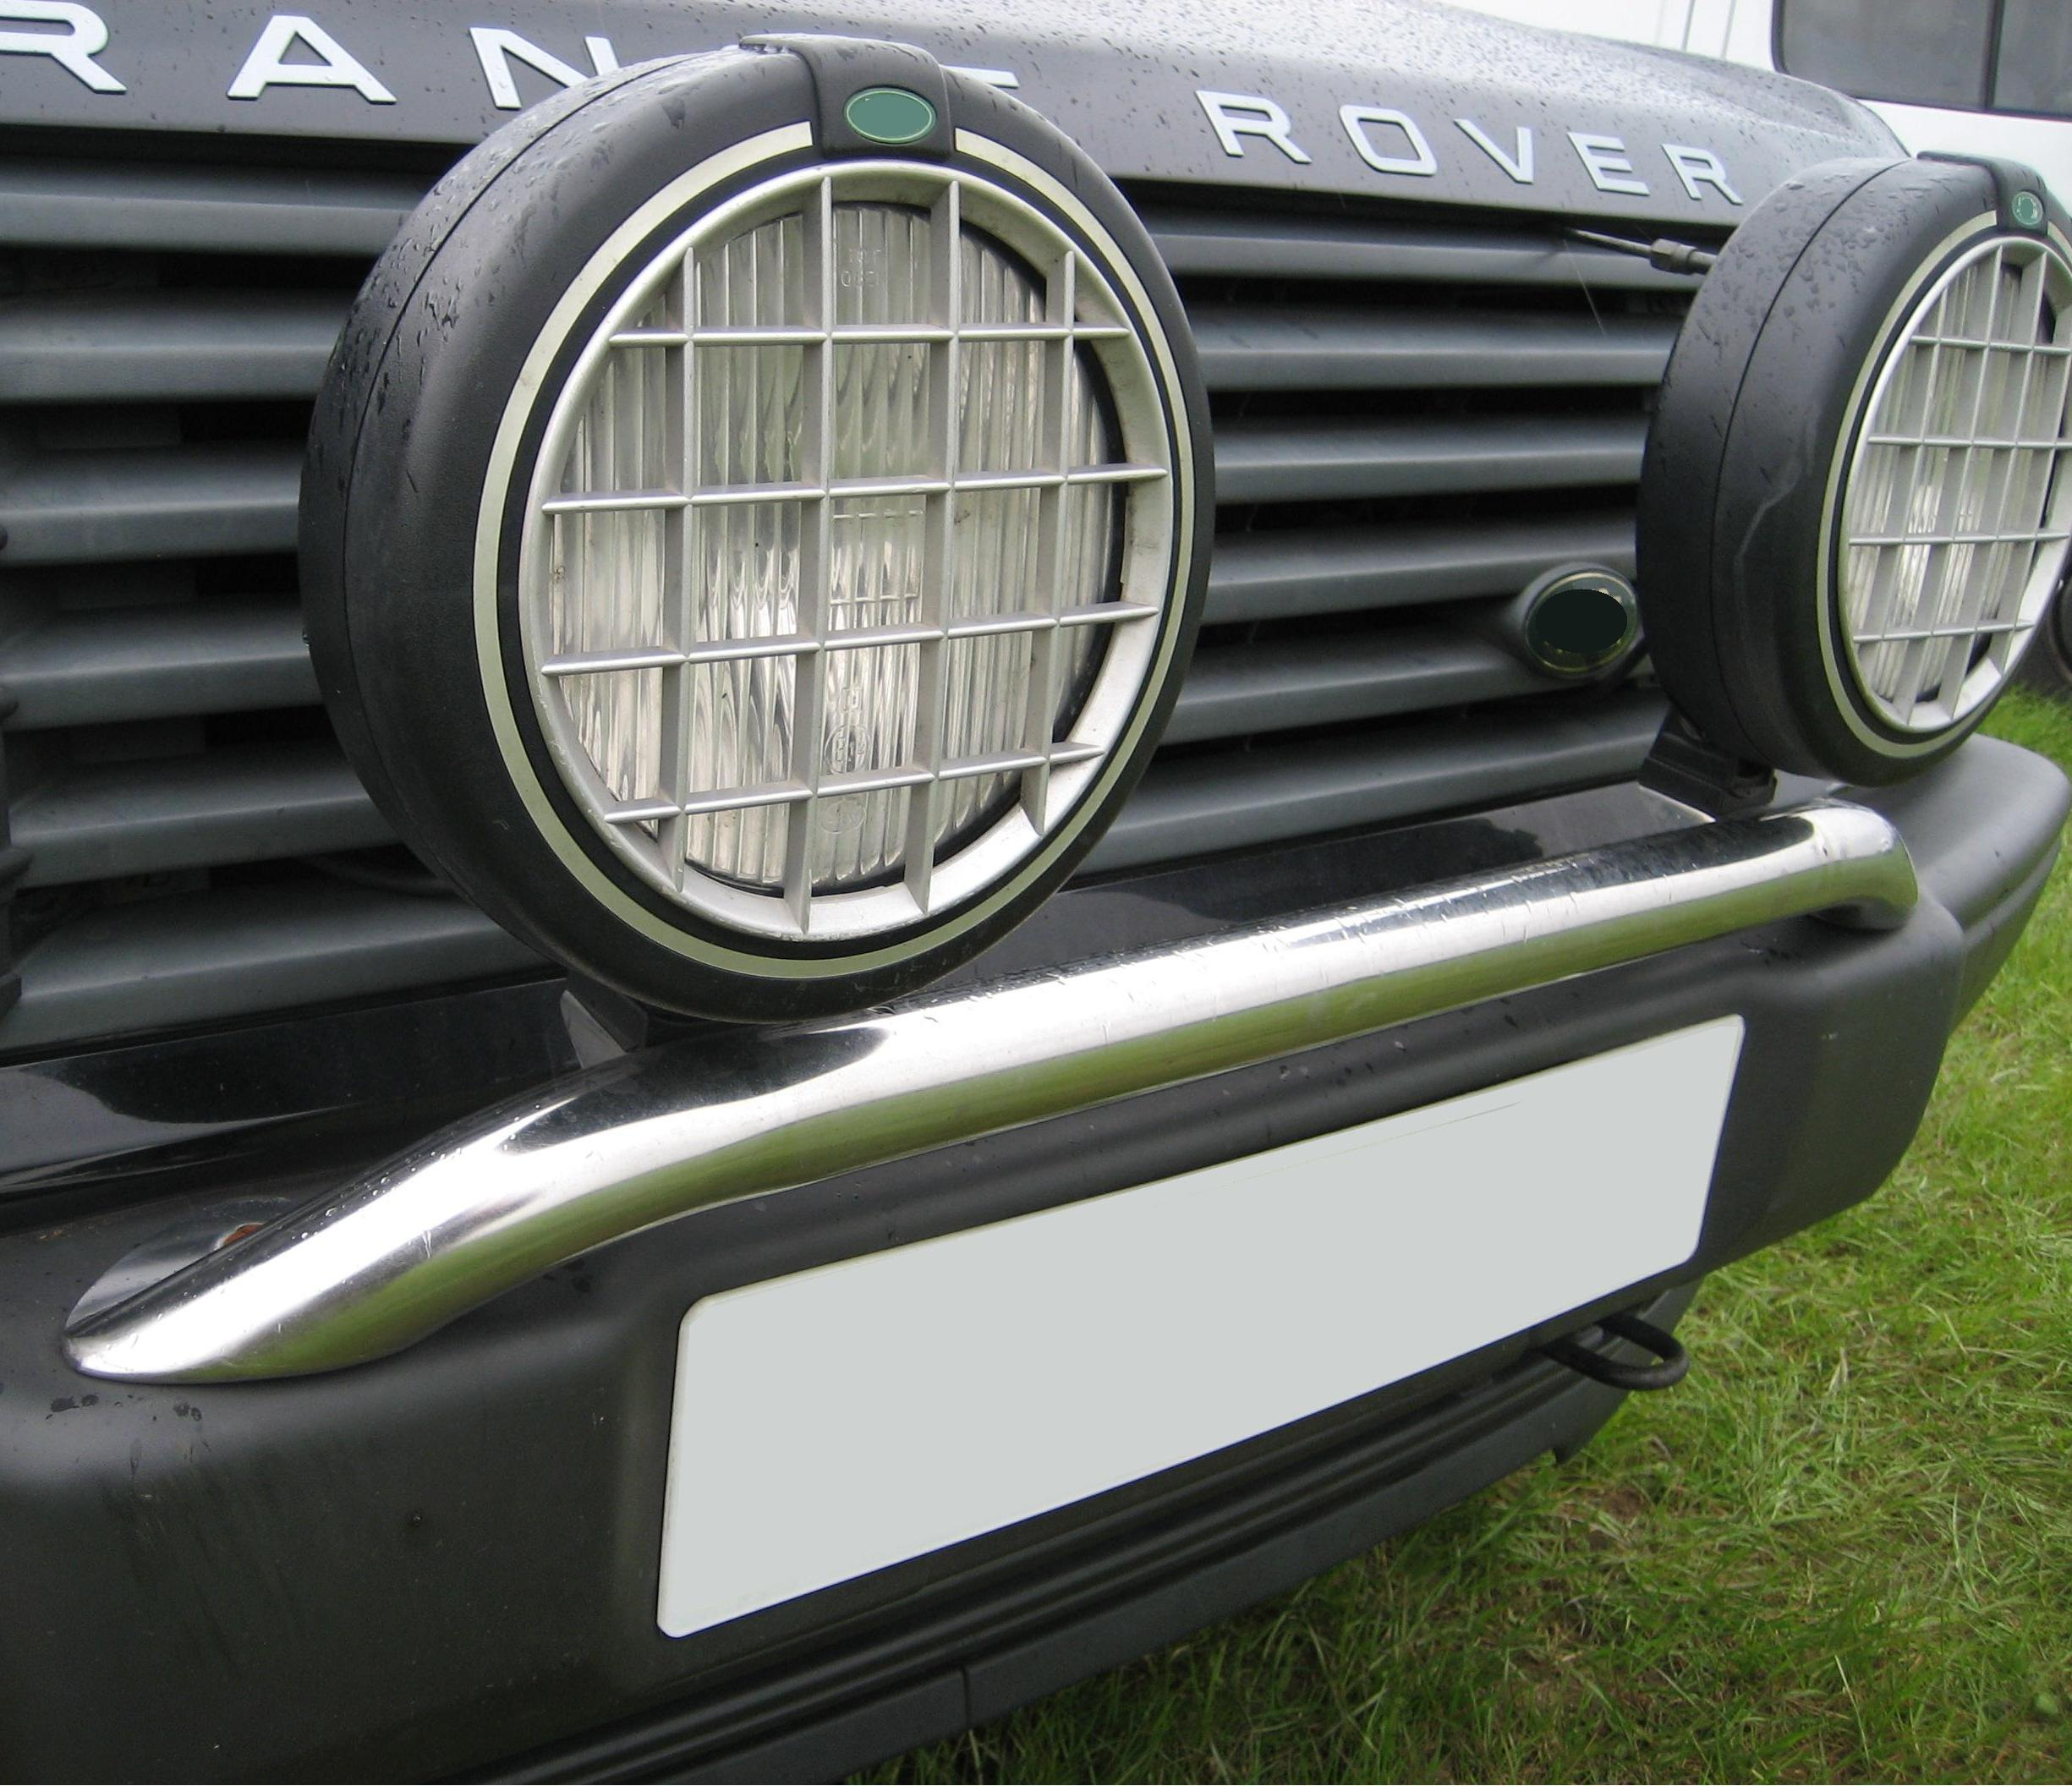 A Chrome Front Bumper Spot Light Mounting Bar For Range Rover P38